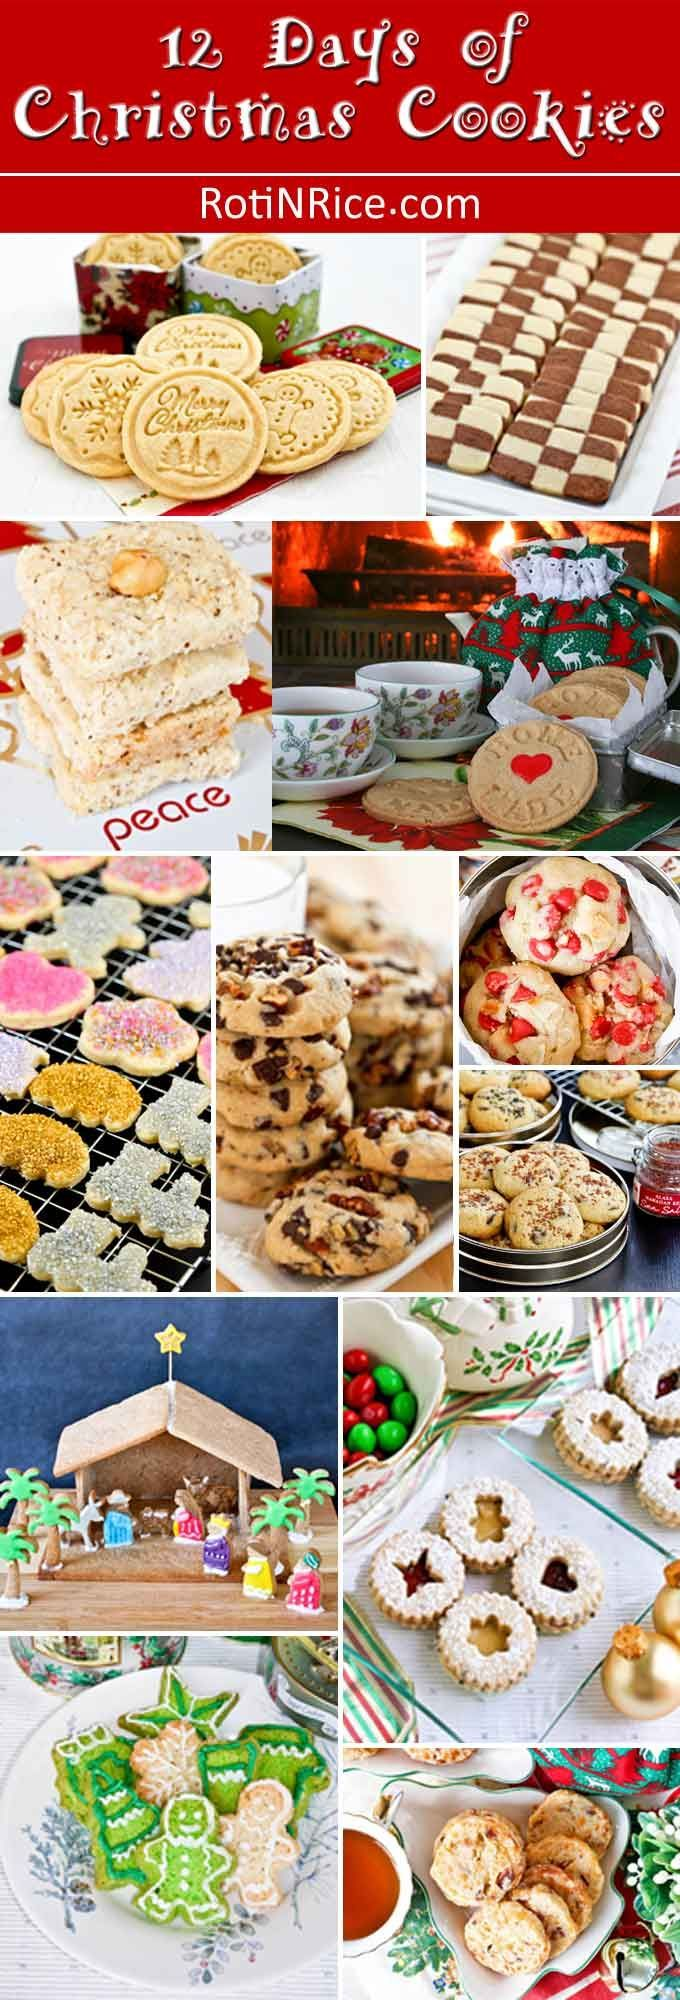 12 Days of Christmas Cookies | Egg free, Christmas cookies and ...